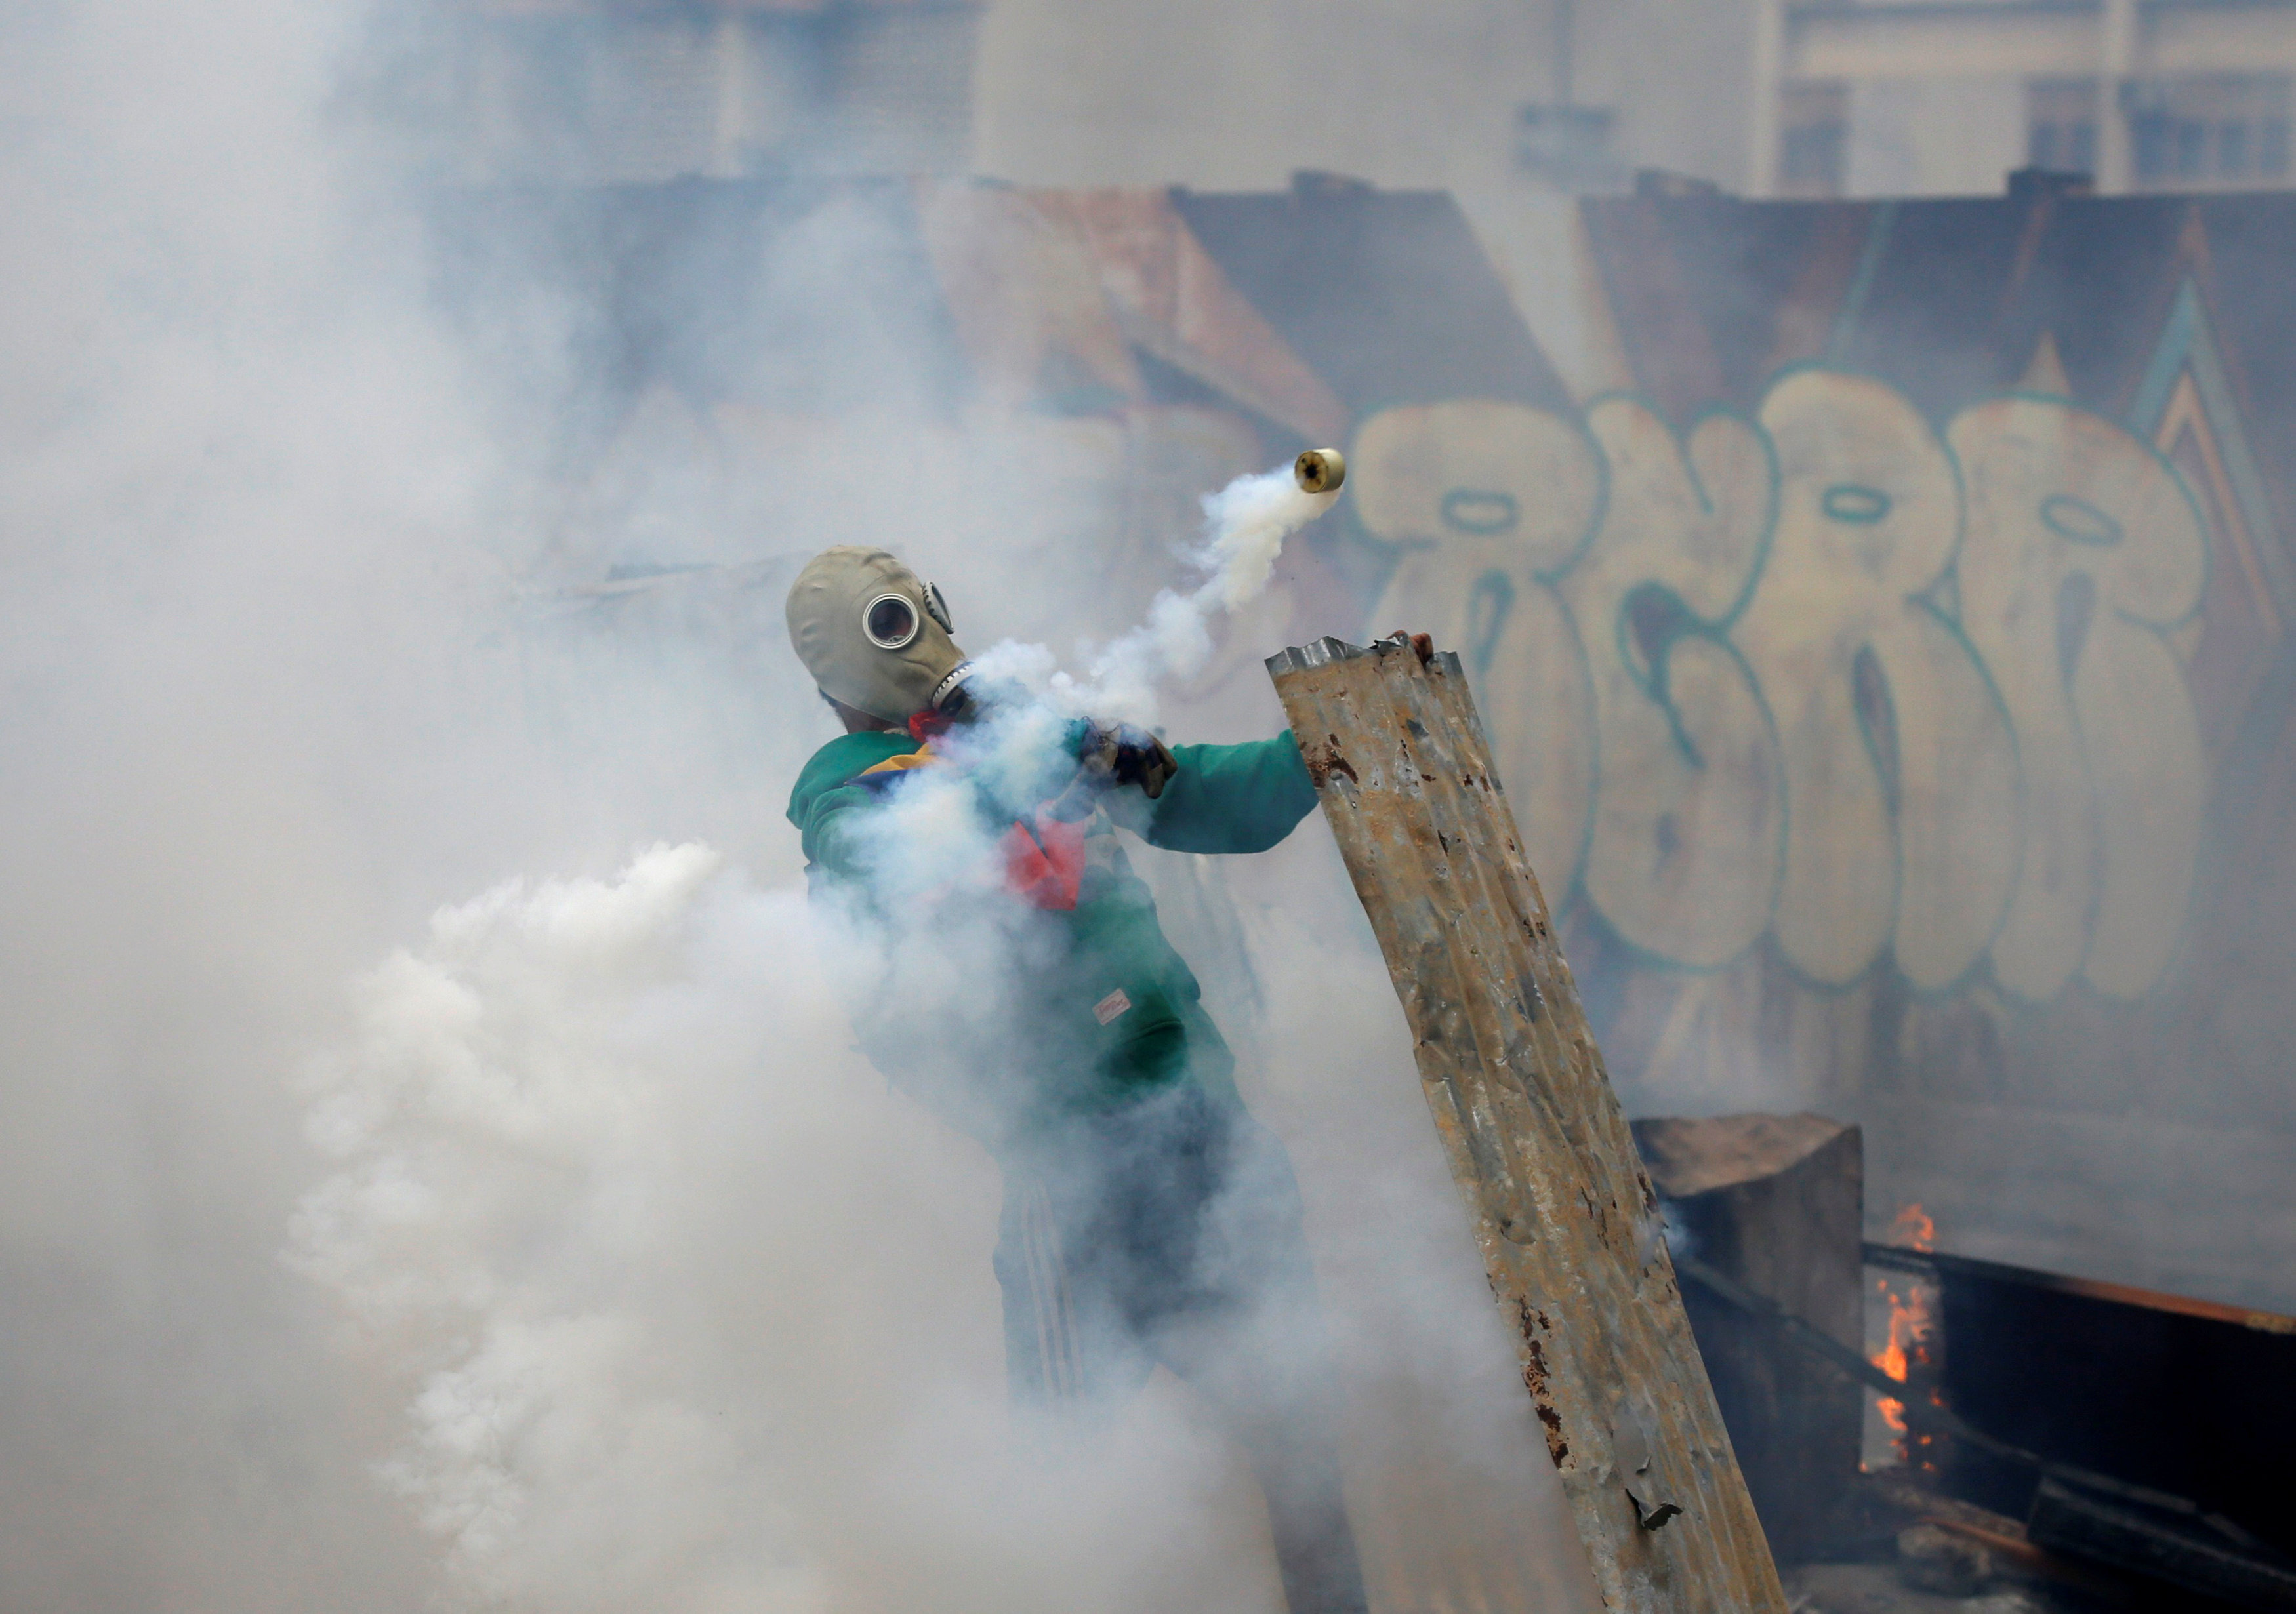 """An opposition demonstrator throws back a gas grenade while clashing with riot police during the so called """"mother of all marches"""" against Venezuela's President Nicolas Maduro in Caracas, Venezuela on April 19, 2017. (REUTERS/Carlos Garcia Rawlins)"""